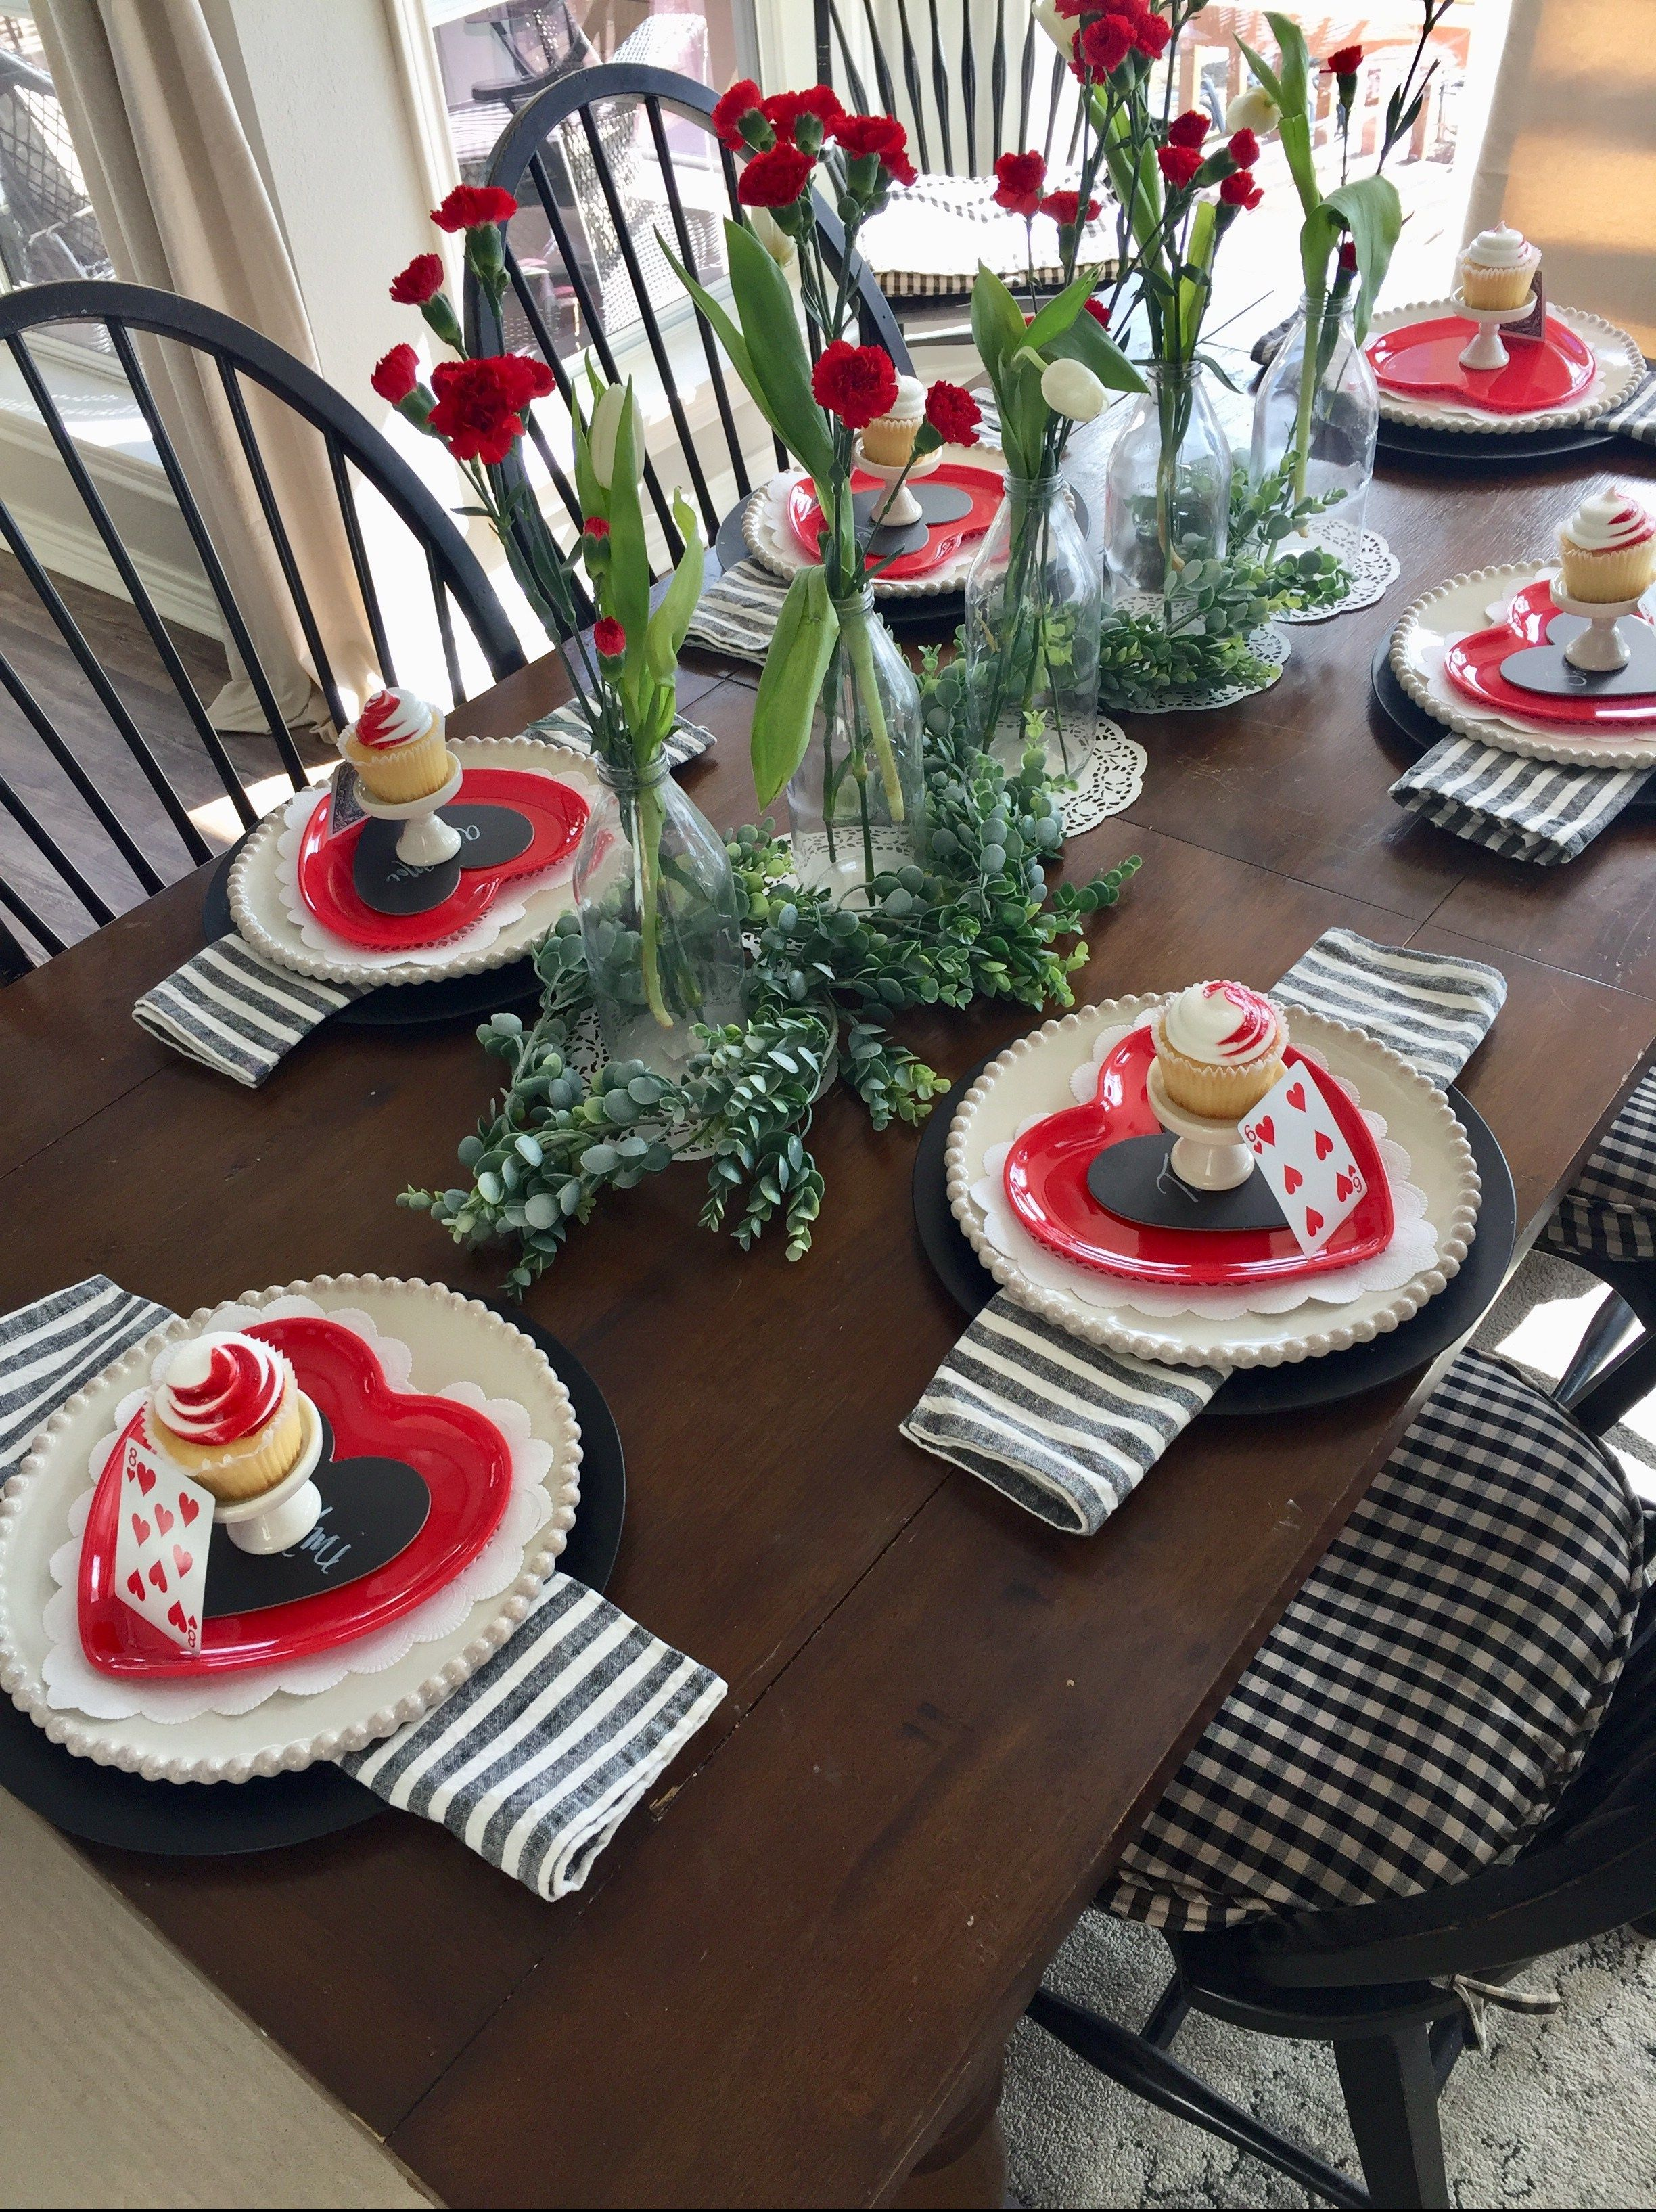 In This Post I M Sharing Some Fun And Simple Valentine Day Decorating Ideas Valentine Table Decor Romantic Tabl Decoracion Mesas Mesa De Navidad Como Adornar